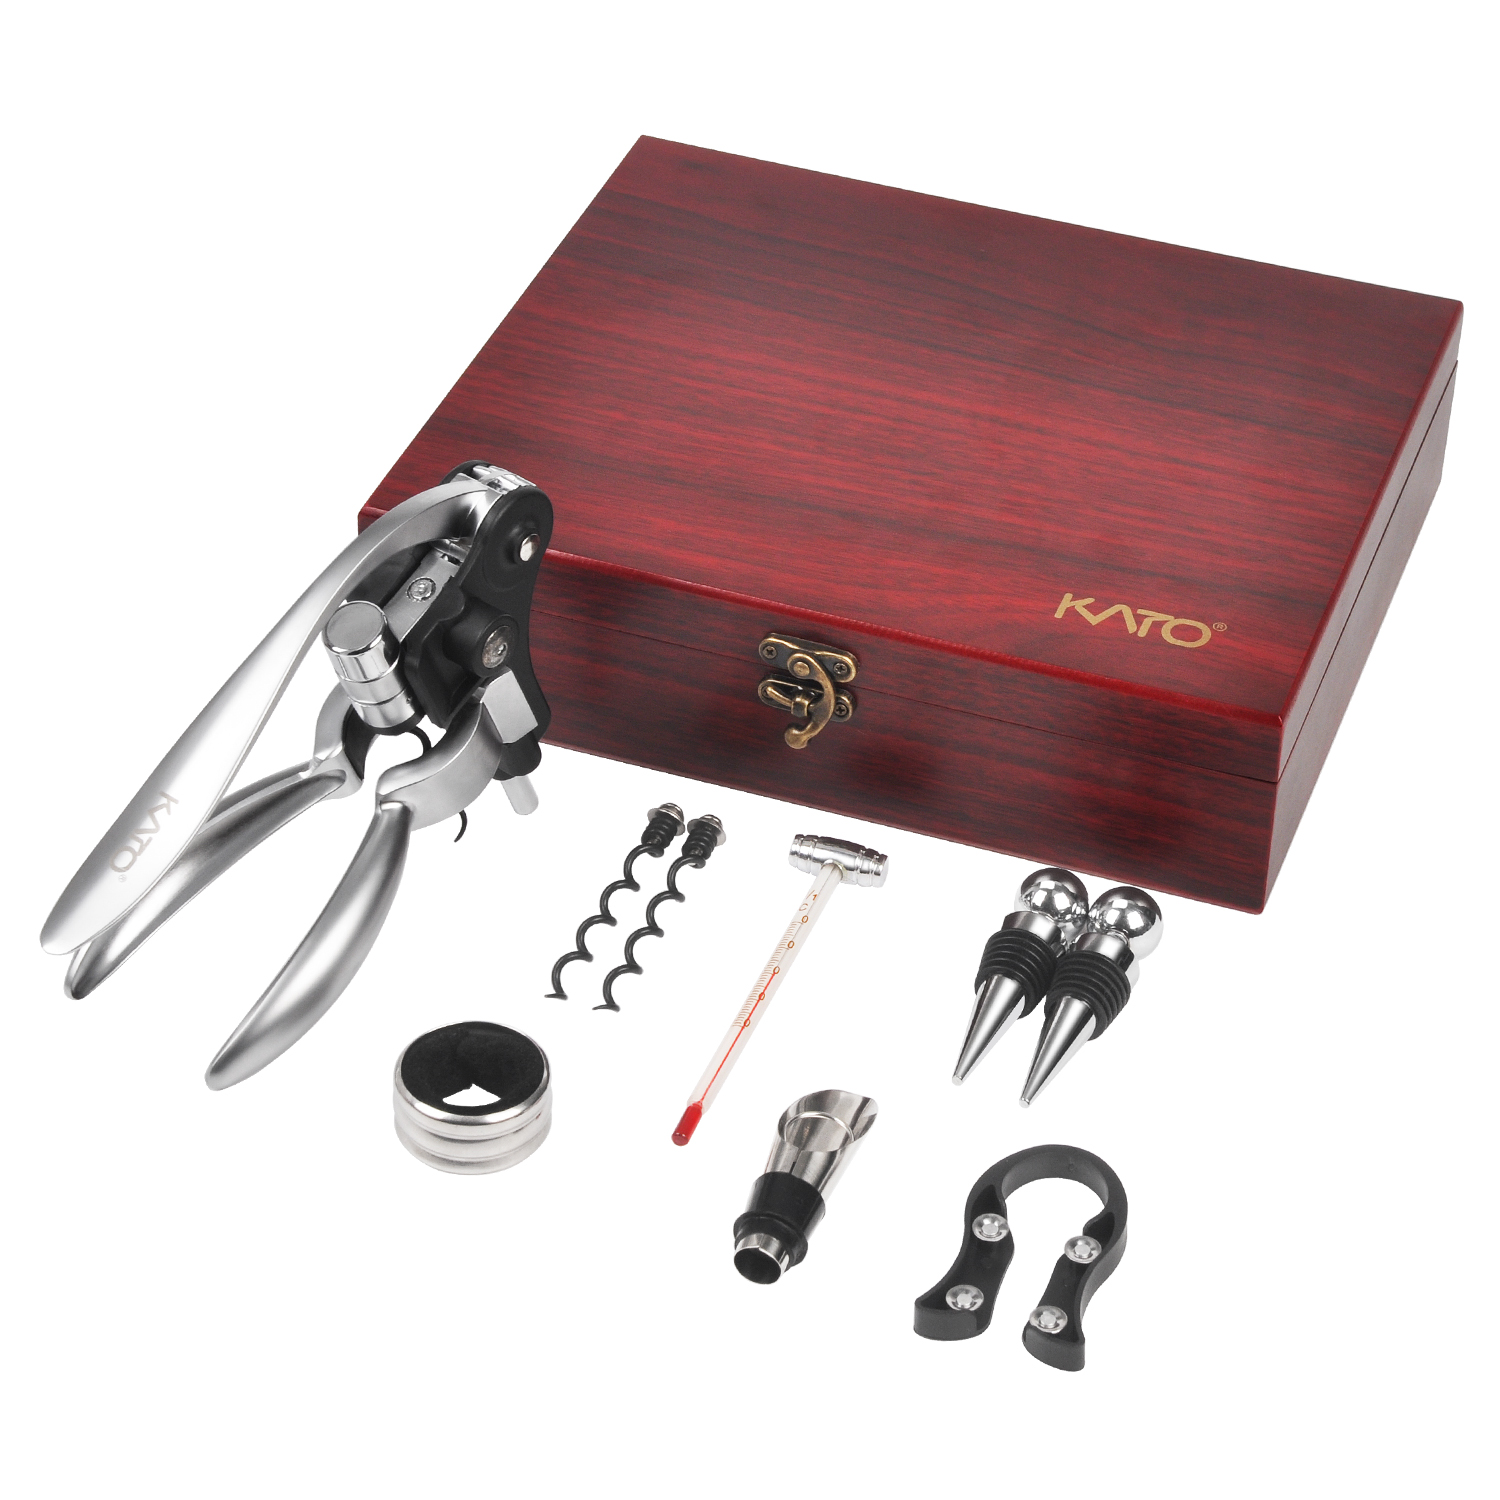 Rabbit Wine Opener Corkscrew Set, 9 Pieces Wine Bottle Screwpull Accessories Gift Kit, Wine Stoppers and Pourer, Foil Cutter and Extra Screws In Deluxe Red Box by Kato